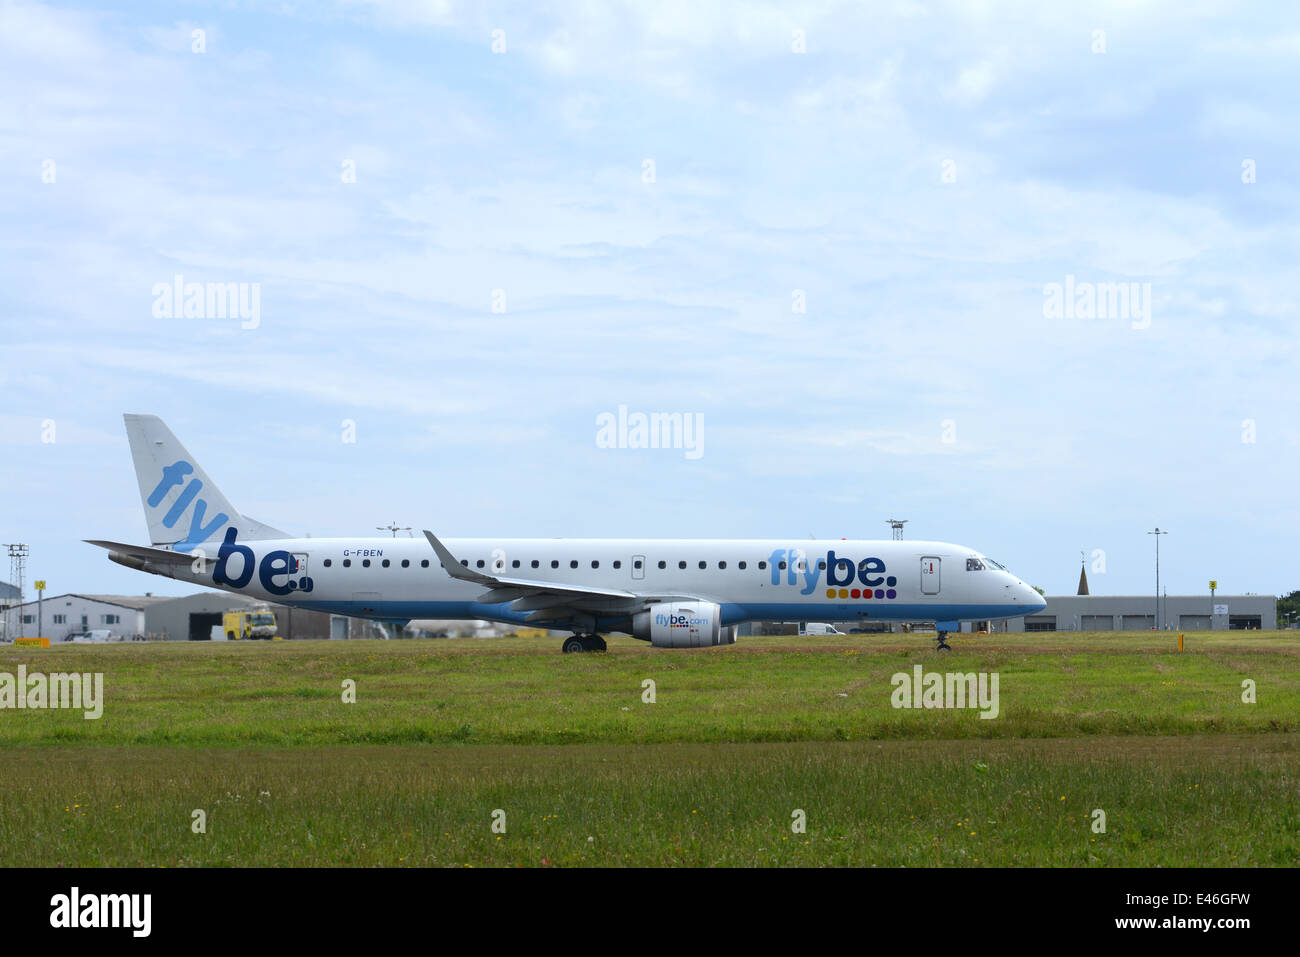 Flybe Jet plane on airport runway - Stock Image